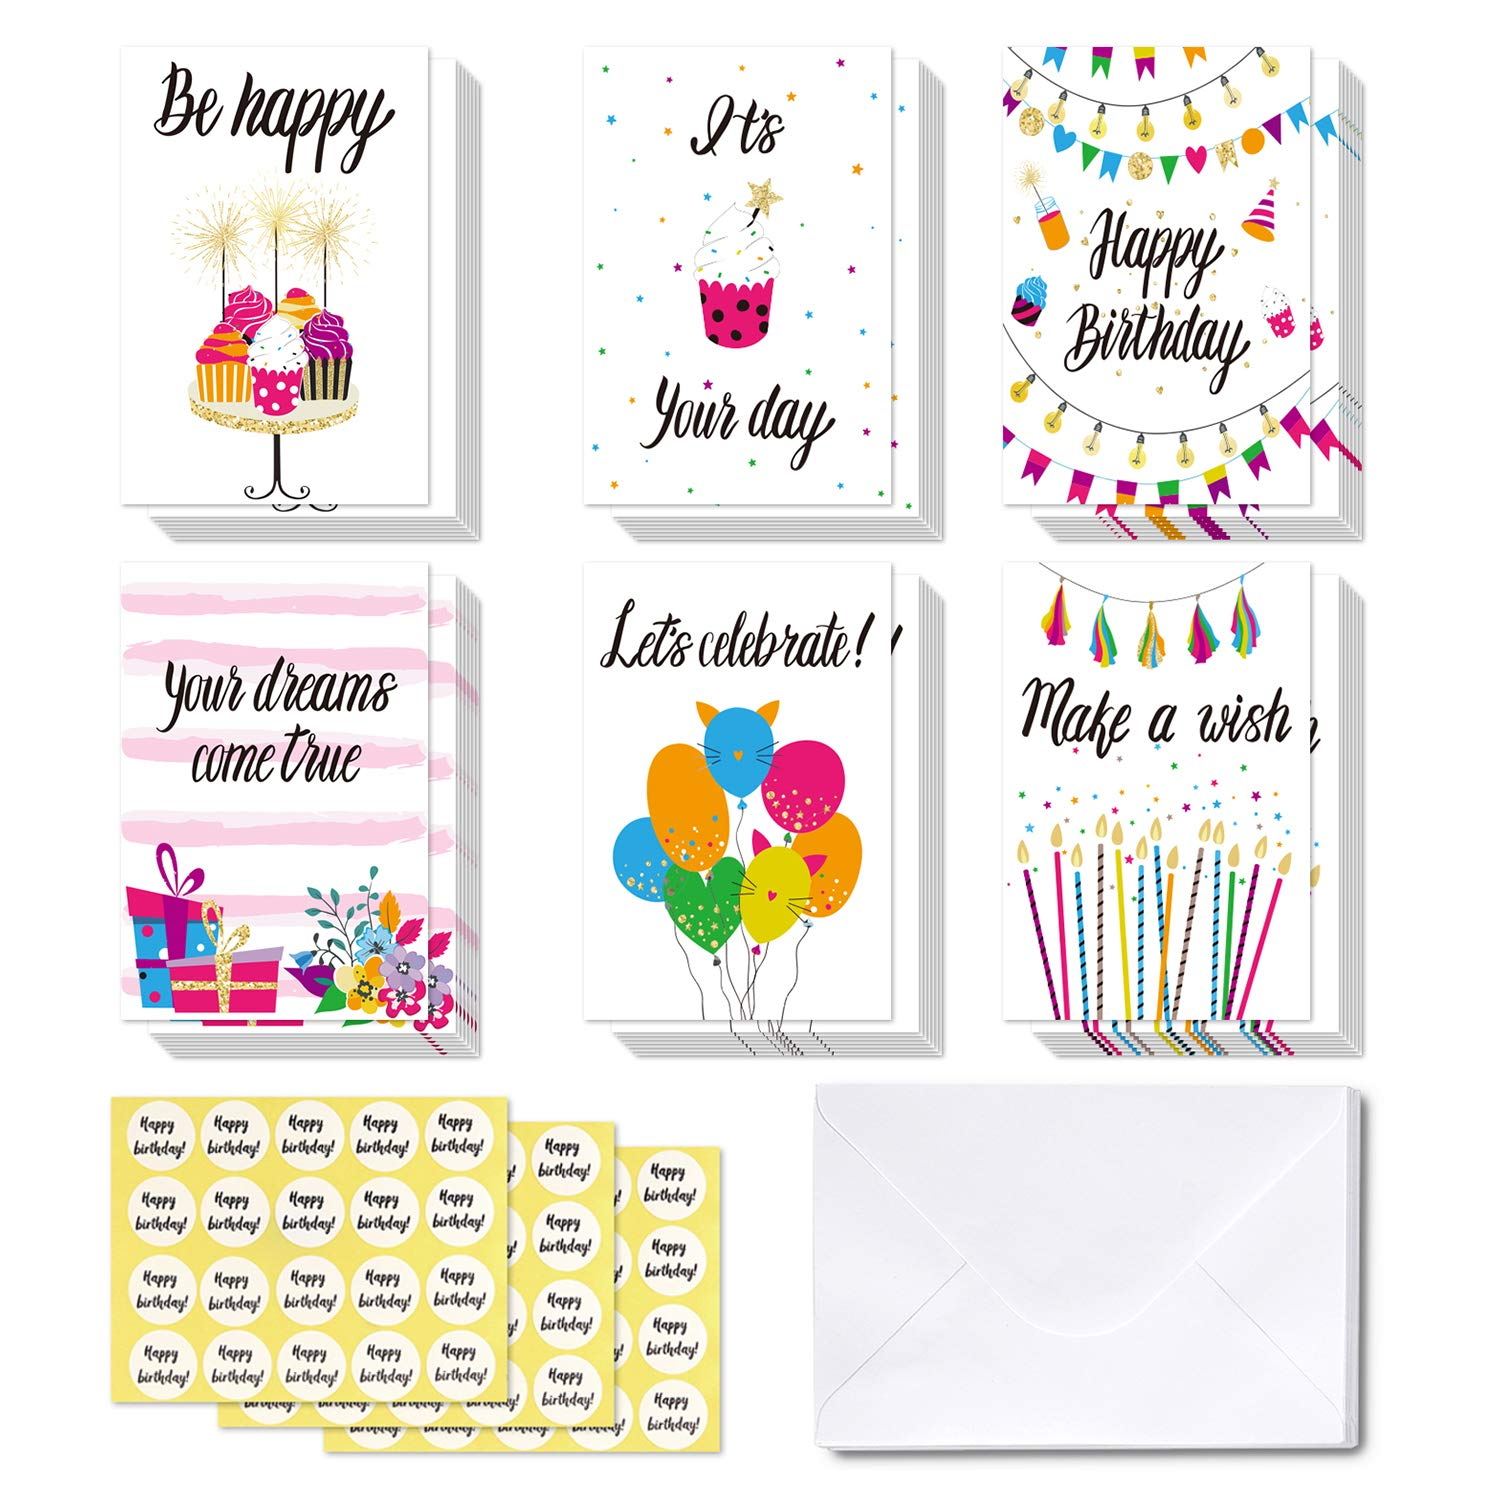 48 Happy Birthday Cards Ohuhu Folded Card For Kids Blank Inside Greeting Note W White Envelopes And Stickers Candle Cake Balloon Gift